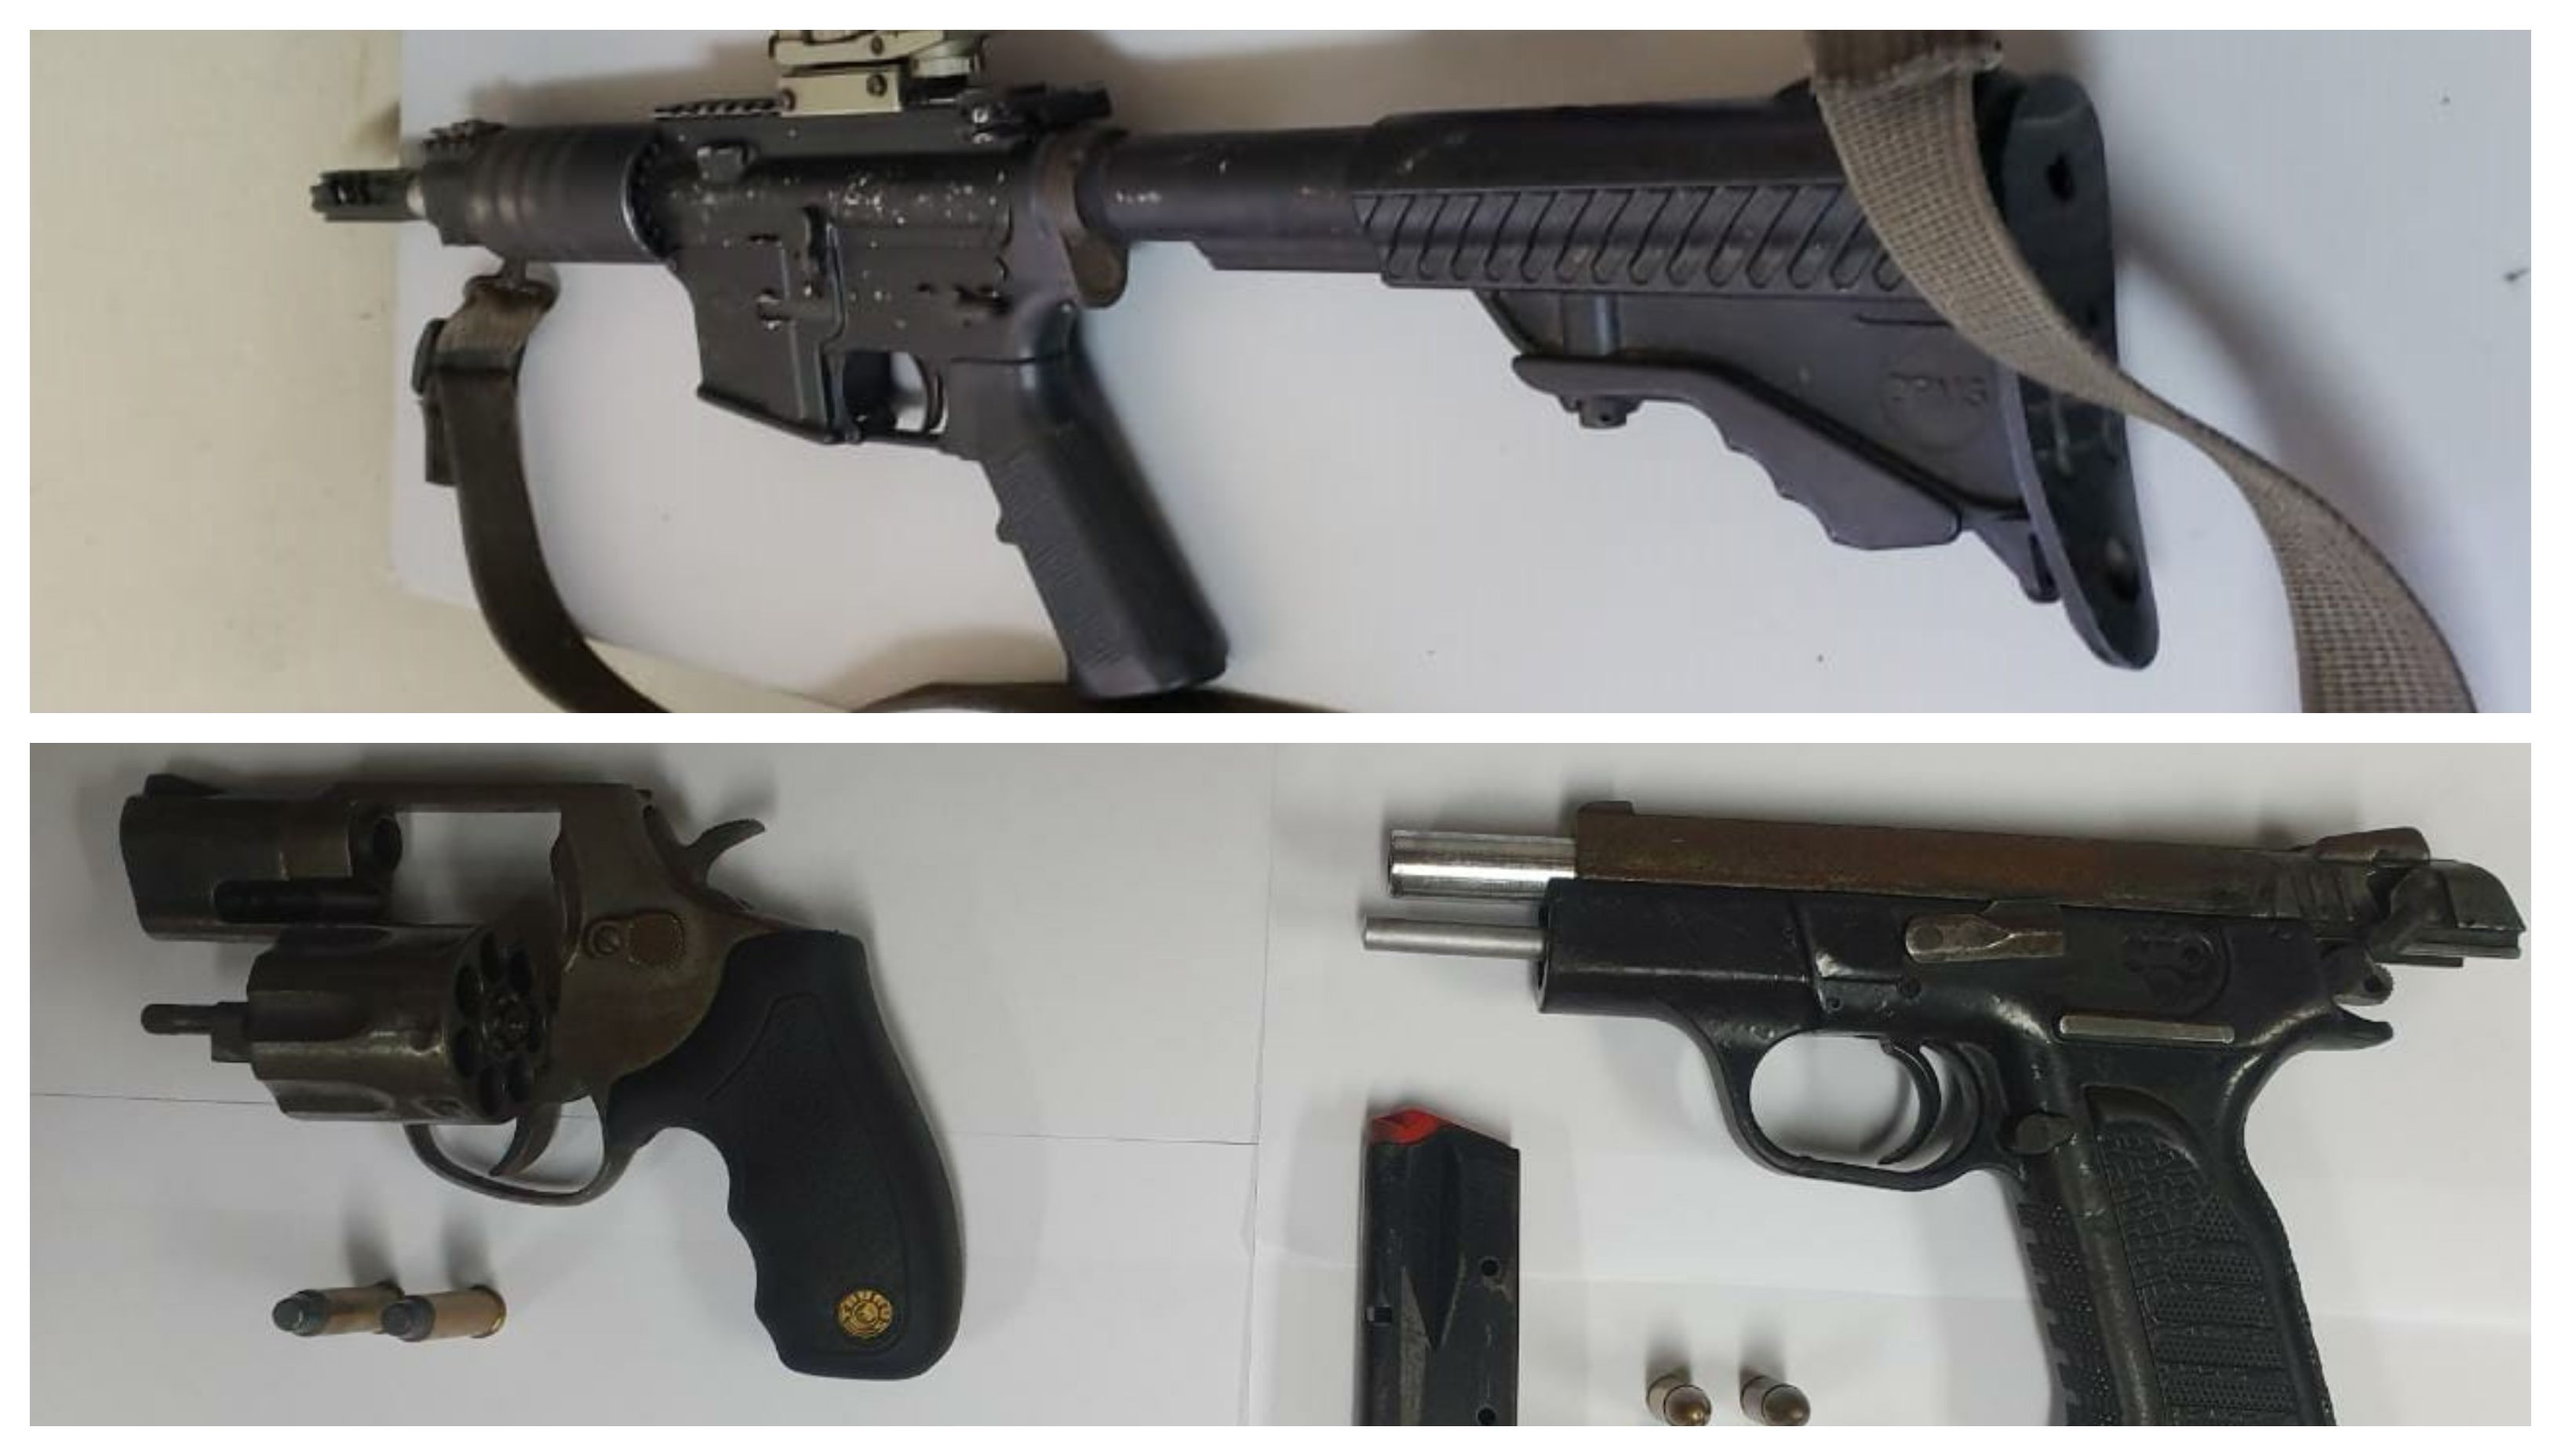 Seized: These firearms were found by police following the fatal shooting of a man in Maraval